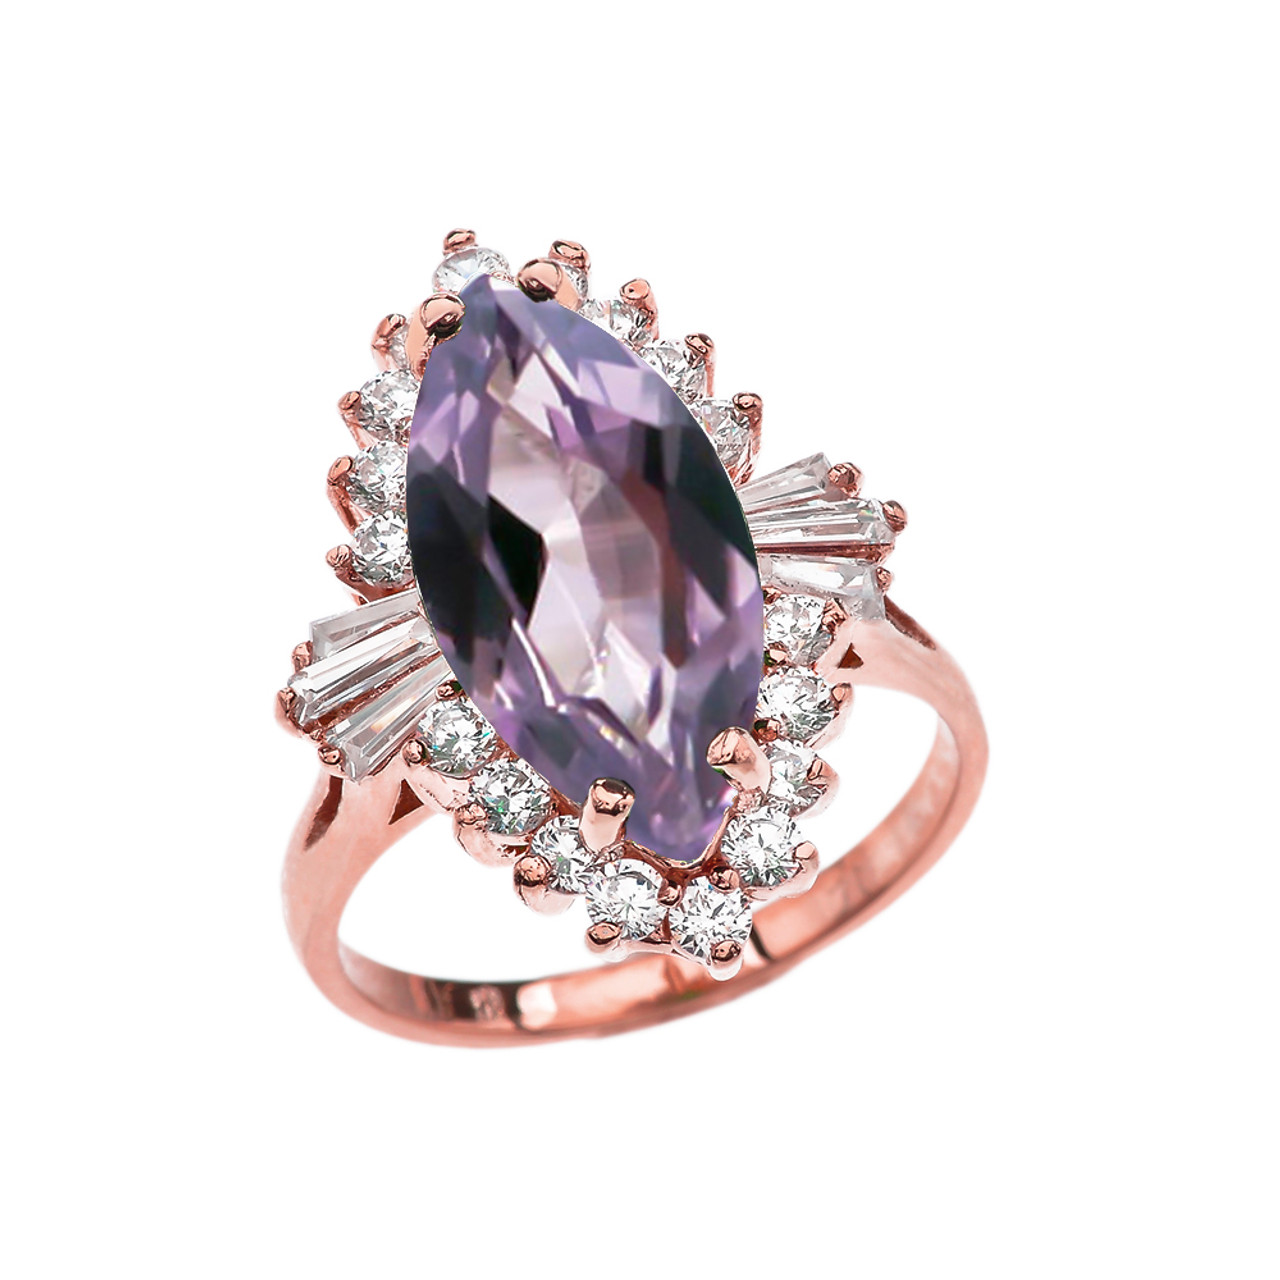 june rings cz ssr celtic birthstone fashion ring ffj p htm band stone engagement alexandrite knot